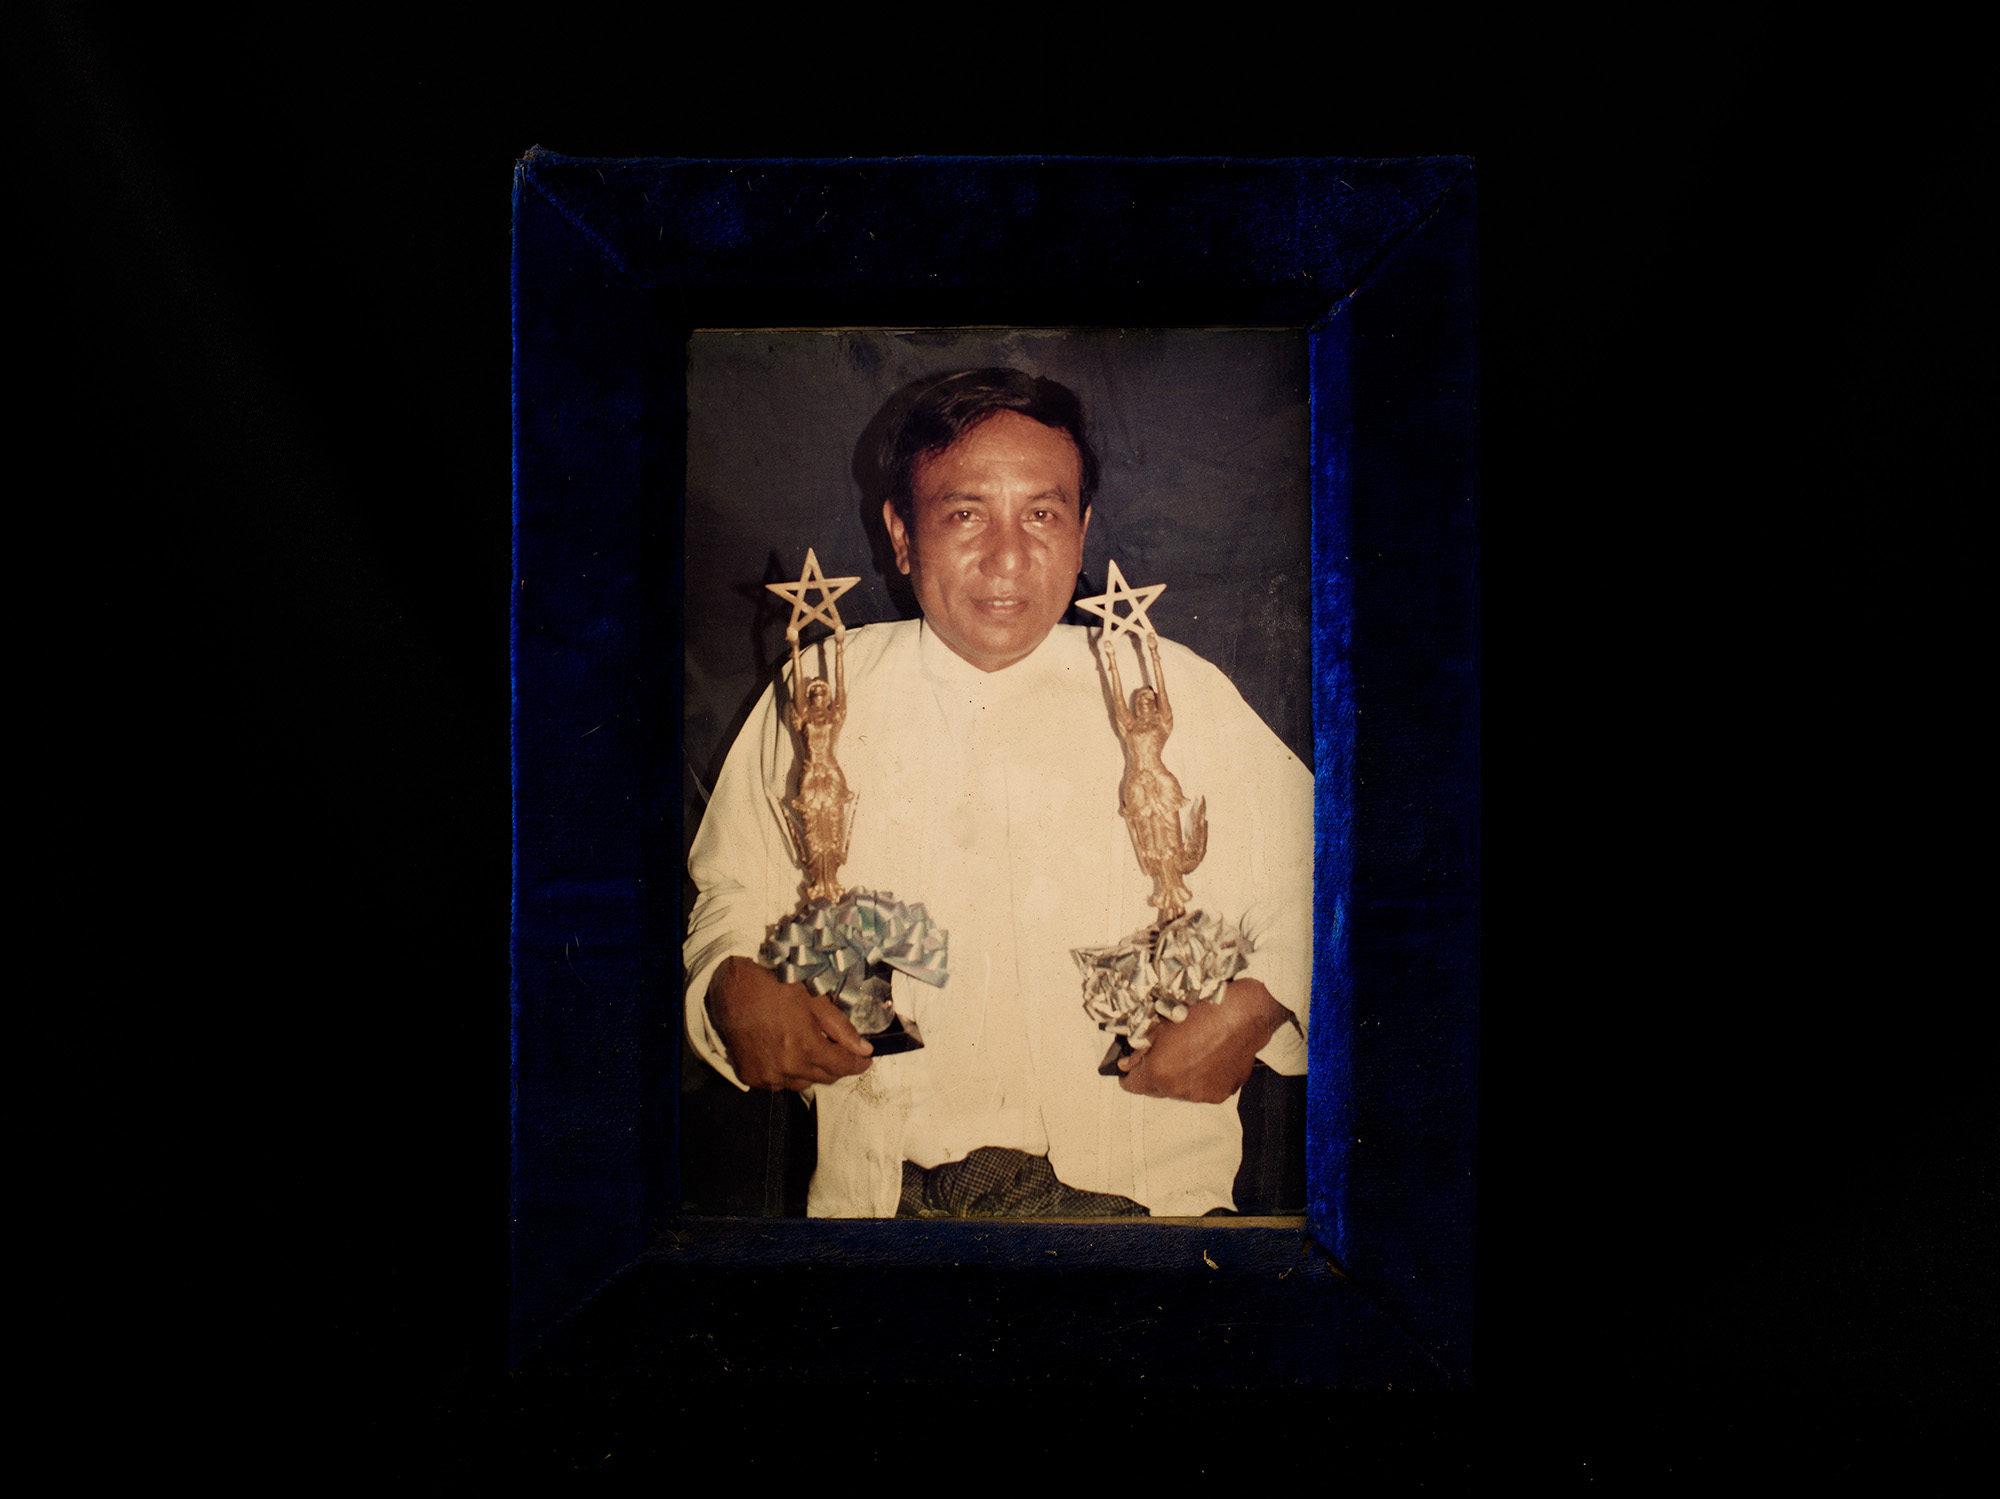 A framed photograph of cinematographer Than Nyunt holding his Burmese Academy Award trophies. Than Nyunt won praise for such films as  Myit Tot Ei Maryar  (Mystery Of The River) and  Nya Min Thar  (Nightwalker).